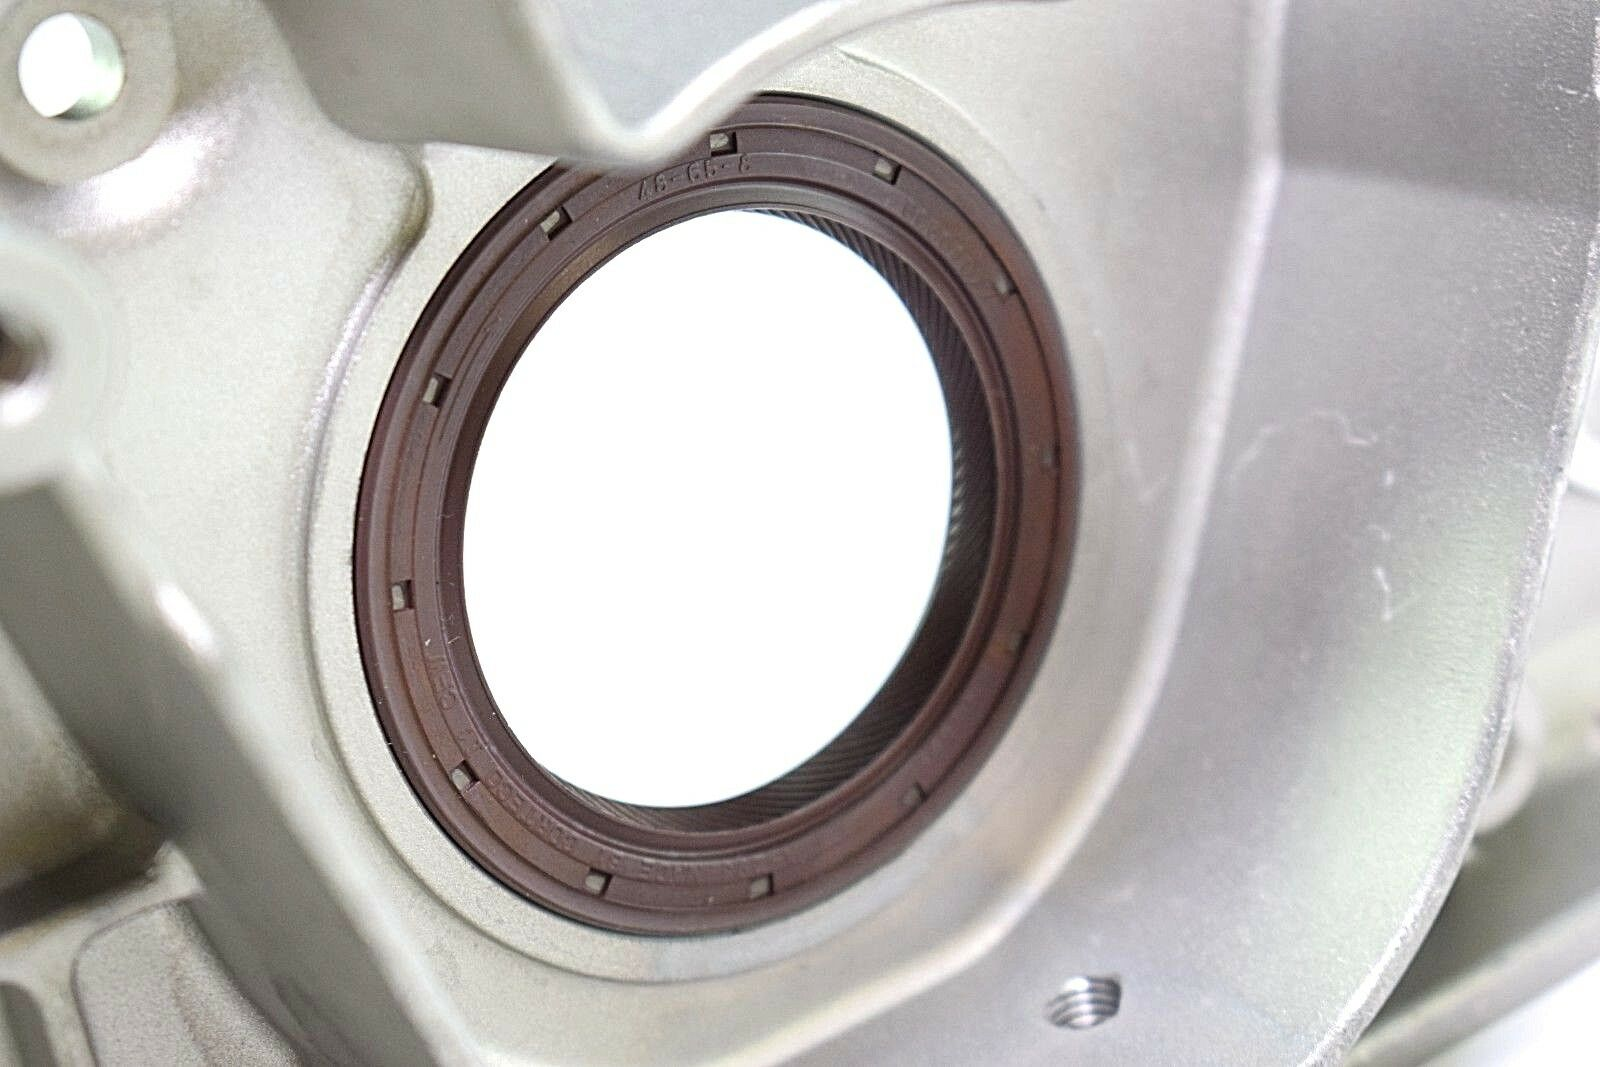 Alfa Romeo 916 Gtv 25 32 V6 Rear Crankshaft Oil Seal Housing Spider Nord Engine Diagram This Is A Brand New Genuine Aluminium To Fit The Following